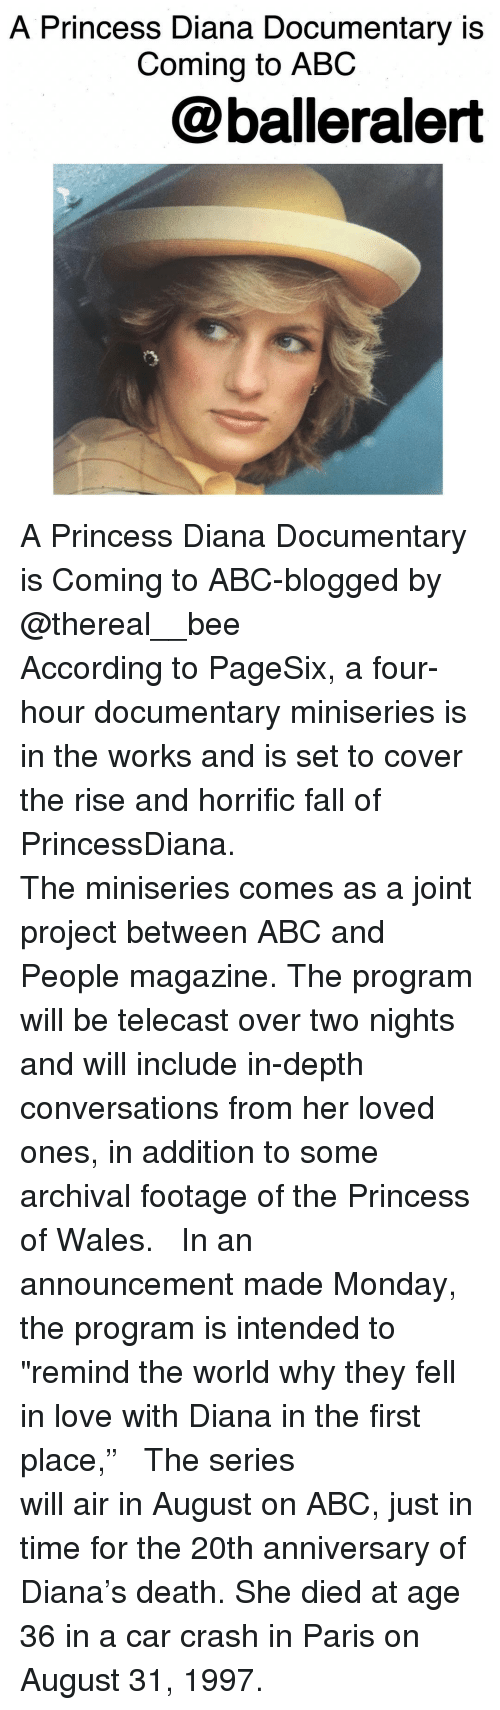 """accordance: A Princess Diana Documentary is  Coming to ABC  @balleralert A Princess Diana Documentary is Coming to ABC-blogged by @thereal__bee ⠀⠀⠀⠀⠀⠀⠀⠀⠀ ⠀⠀⠀⠀⠀⠀⠀⠀⠀ According to PageSix, a four-hour documentary miniseries is in the works and is set to cover the rise and horrific fall of PrincessDiana. ⠀⠀⠀⠀⠀⠀⠀⠀⠀ ⠀⠀⠀⠀⠀⠀⠀⠀⠀ The miniseries comes as a joint project between ABC and People magazine. The program will be telecast over two nights and will include in-depth conversations from her loved ones, in addition to some archival footage of the Princess of Wales. ⠀⠀⠀⠀⠀⠀⠀⠀⠀ ⠀⠀⠀⠀⠀⠀⠀⠀⠀ In an announcement made Monday, the program is intended to """"remind the world why they fell in love with Diana in the first place,"""" ⠀⠀⠀⠀⠀⠀⠀⠀⠀ ⠀⠀⠀⠀⠀⠀⠀⠀⠀ The series will air in August on ABC, just in time for the 20th anniversary of Diana's death. She died at age 36 in a car crash in Paris on August 31, 1997."""